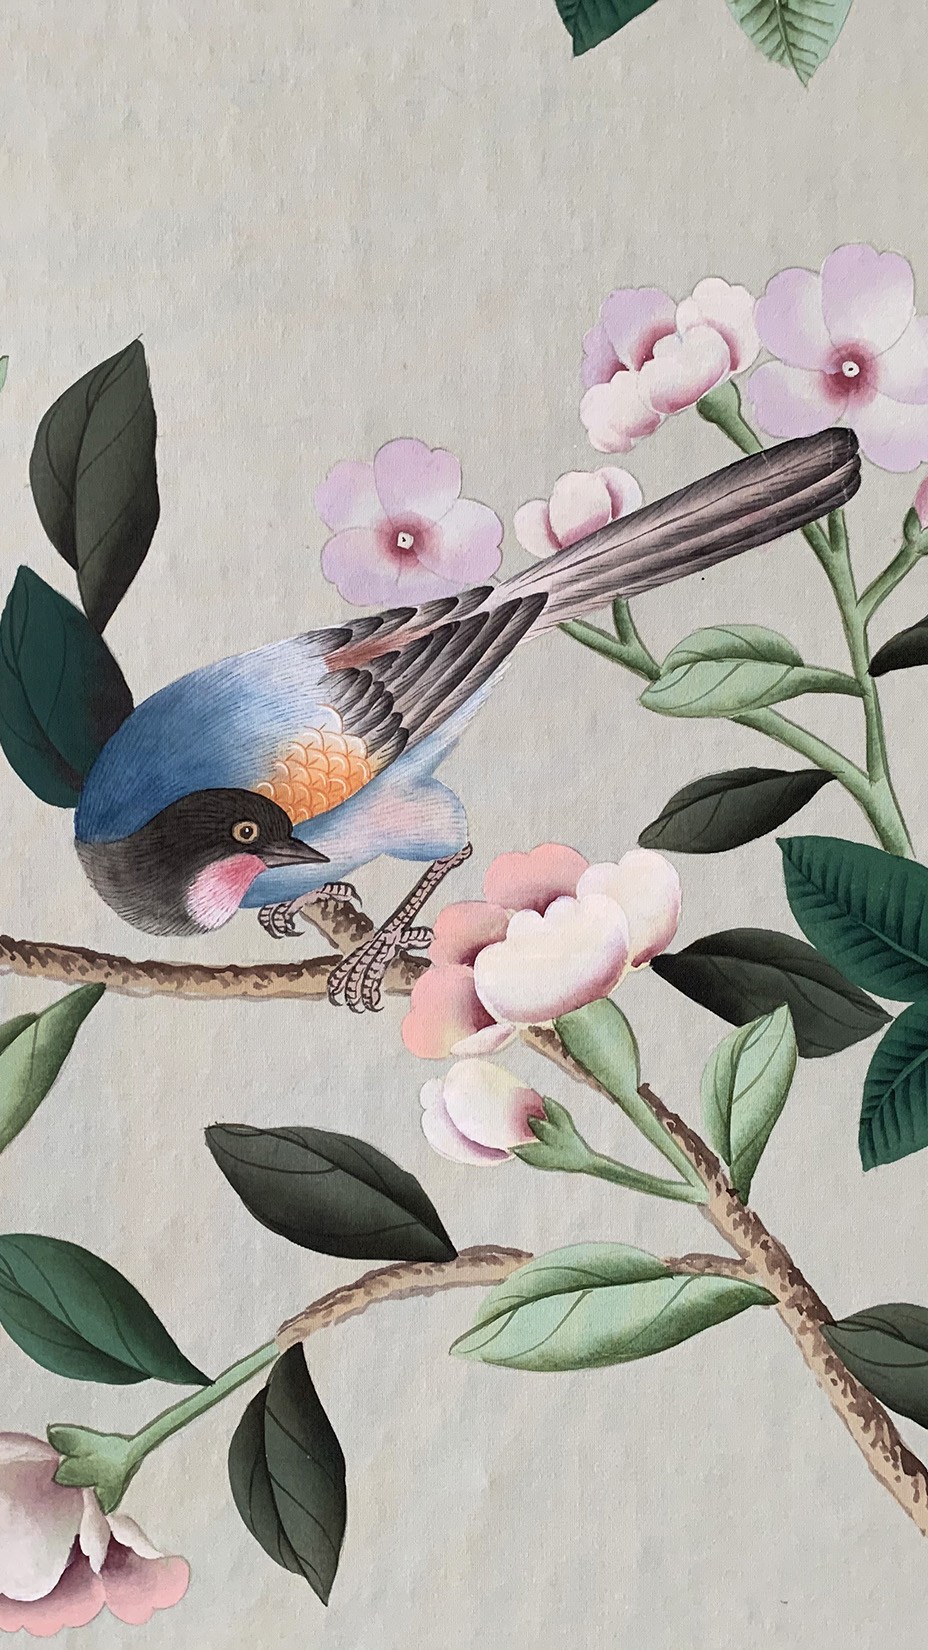 Wallpapers de Gournay - 英国 de Gournay 品牌花鸟系列